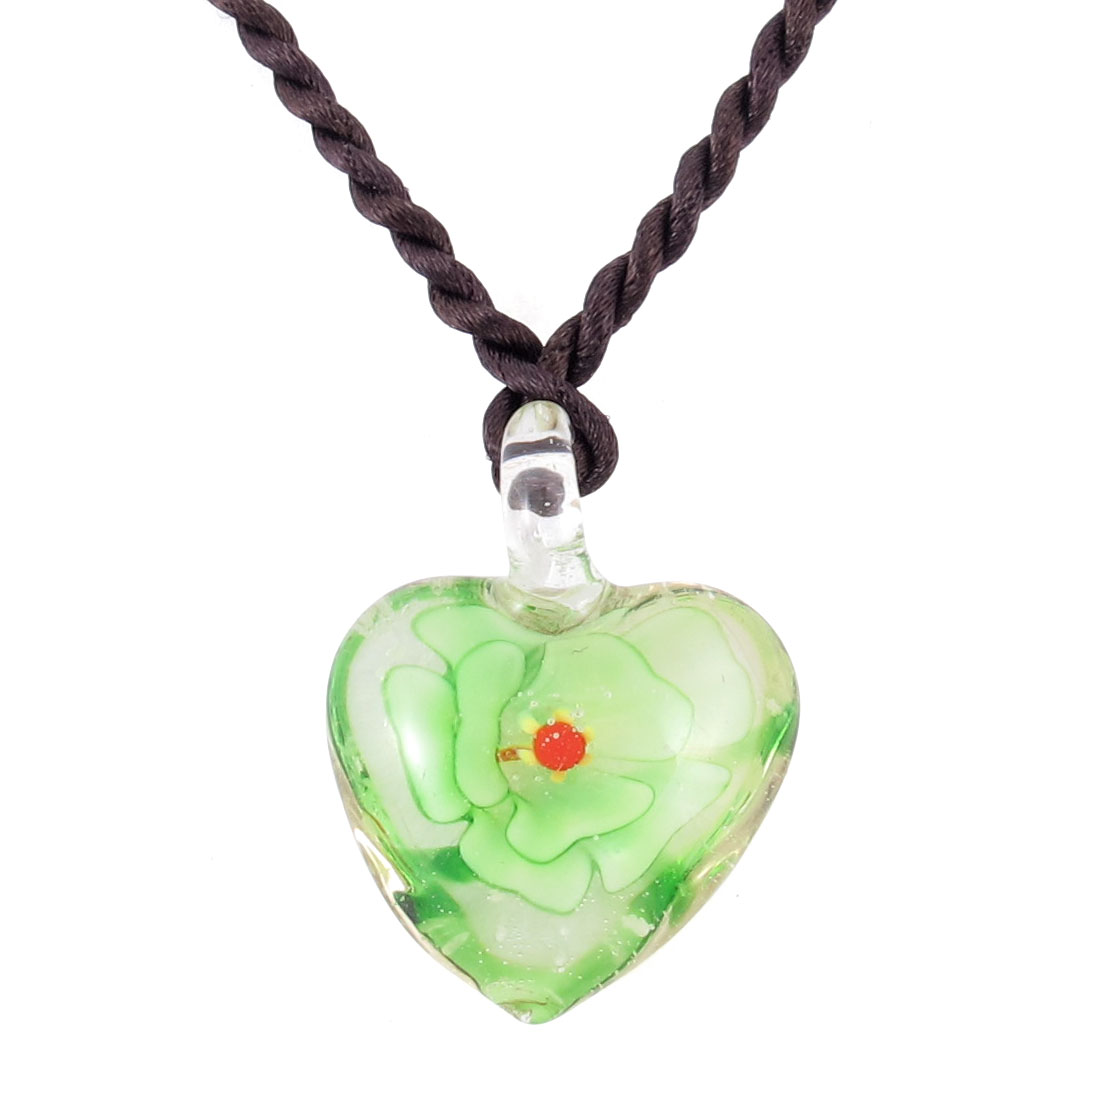 Ladies Knitted String 3D Floral Heart Glass Pendant Necklace Decoration Green